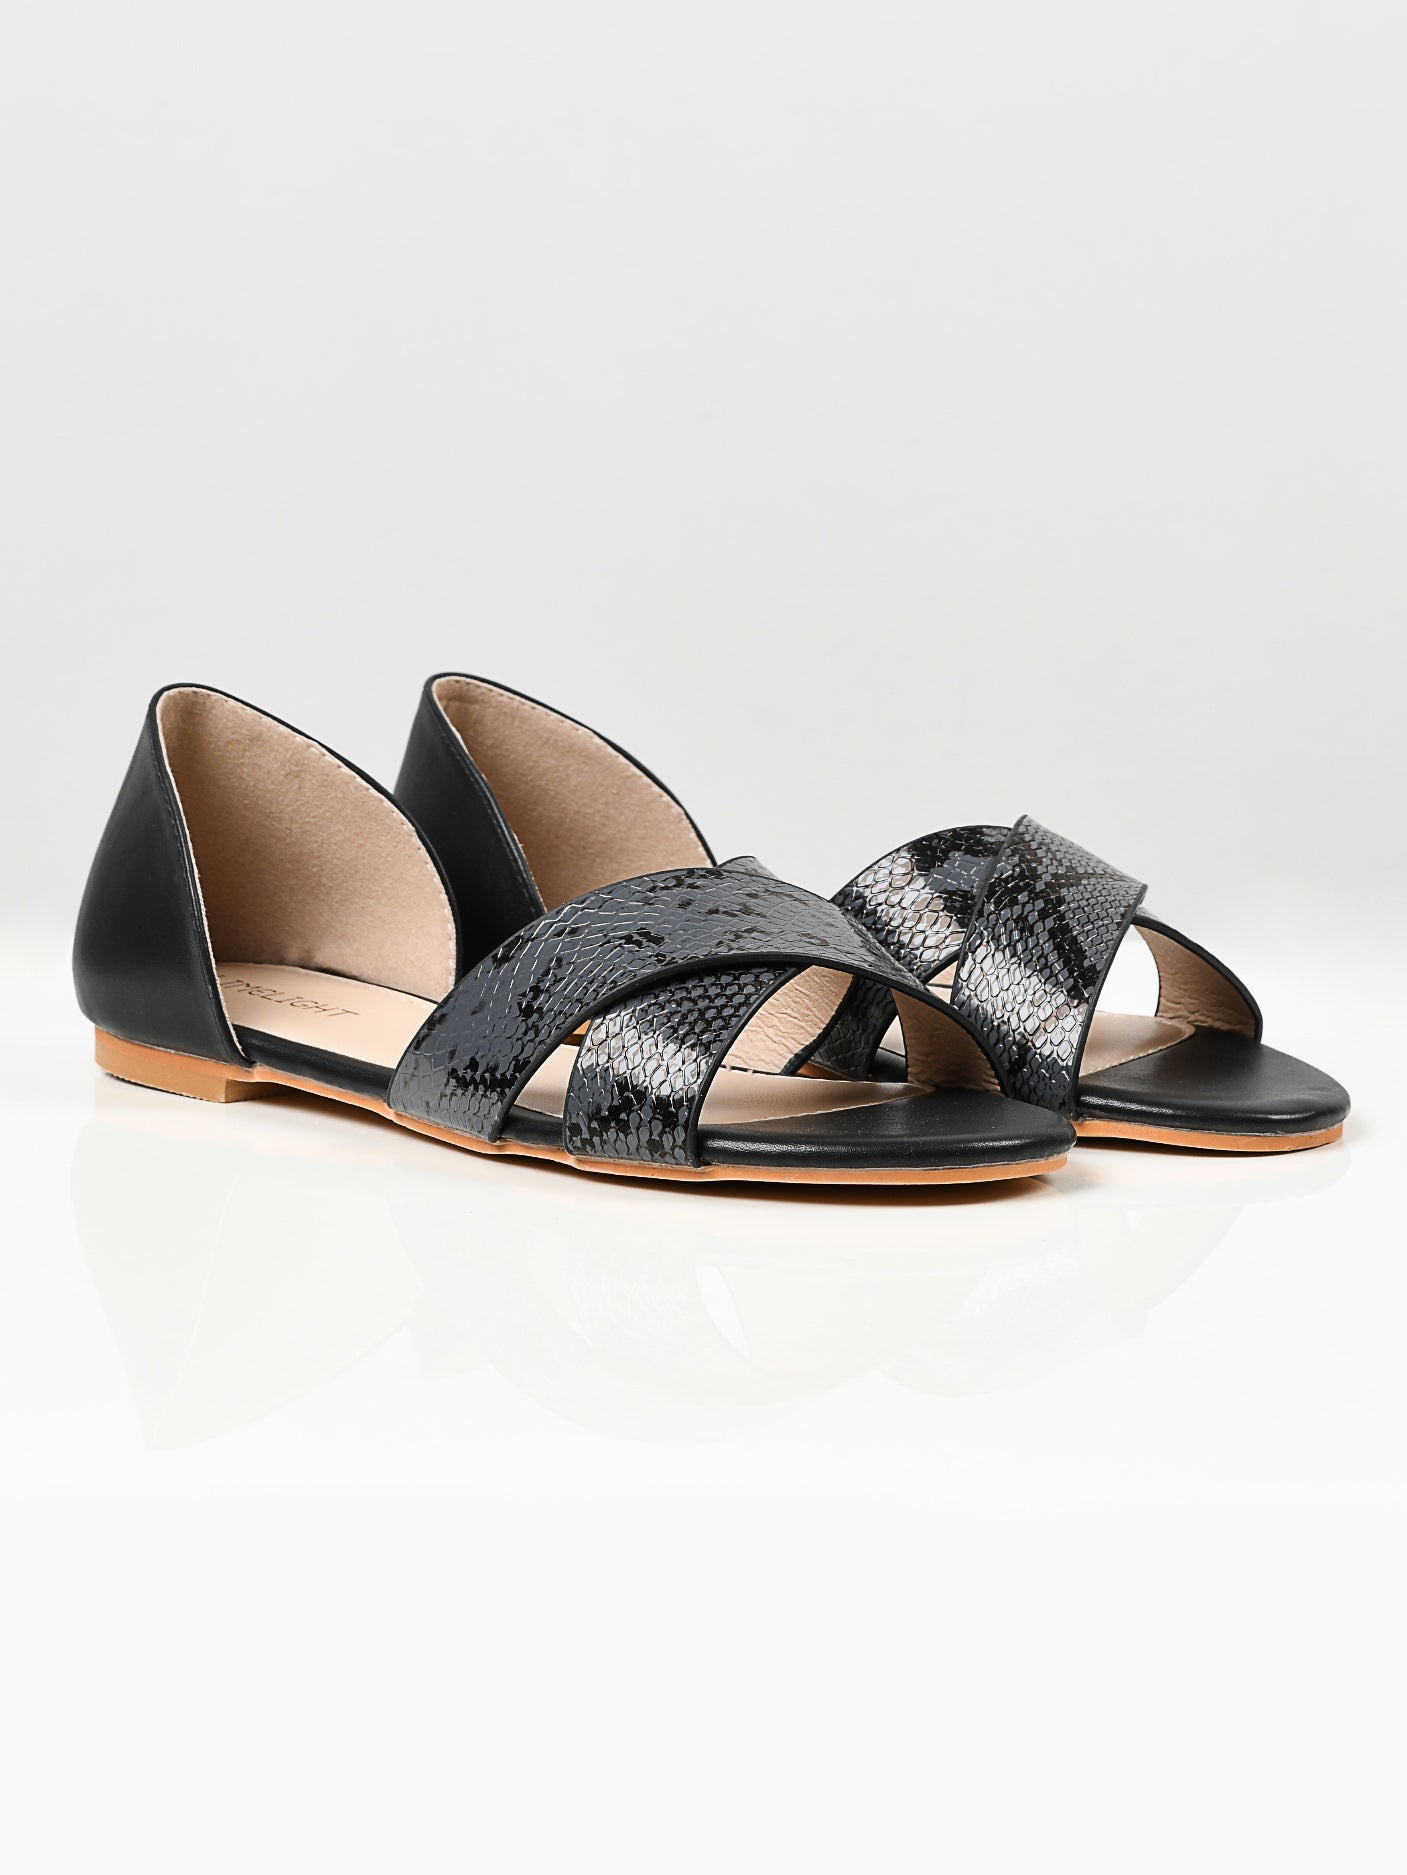 Crisscross Sandals - Black